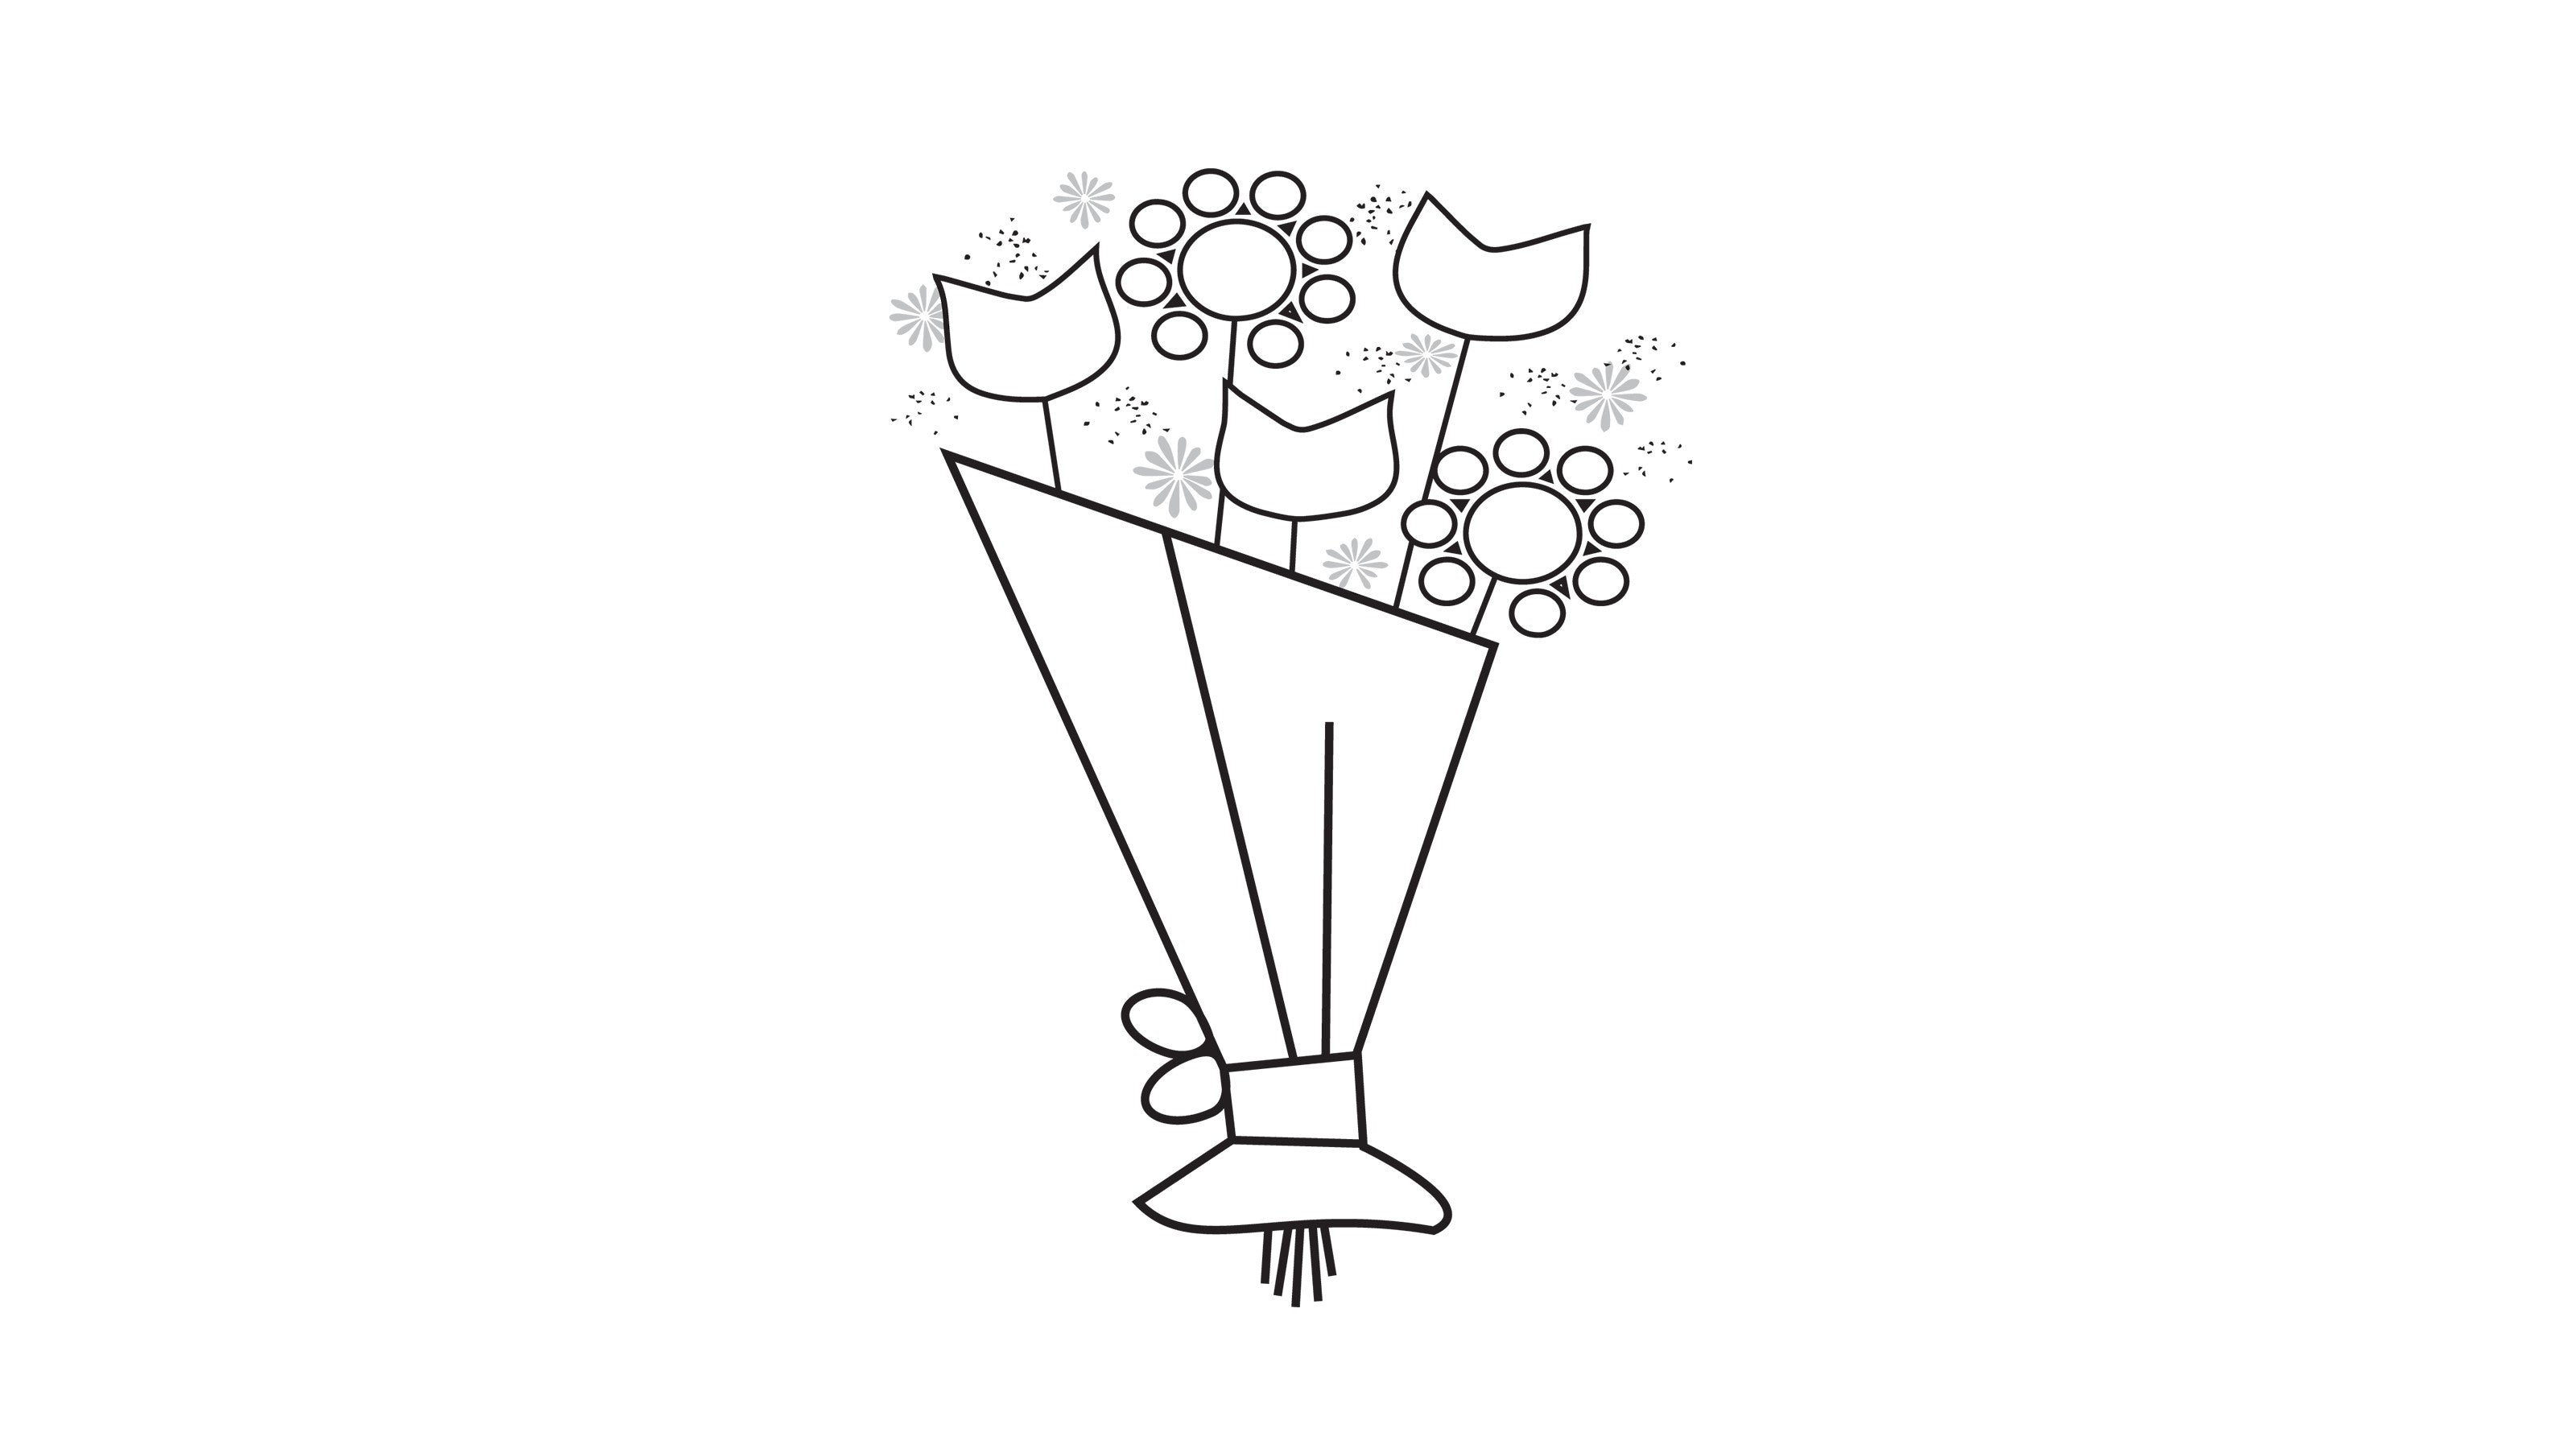 Joyful Bouquet - Image 1 Of 5